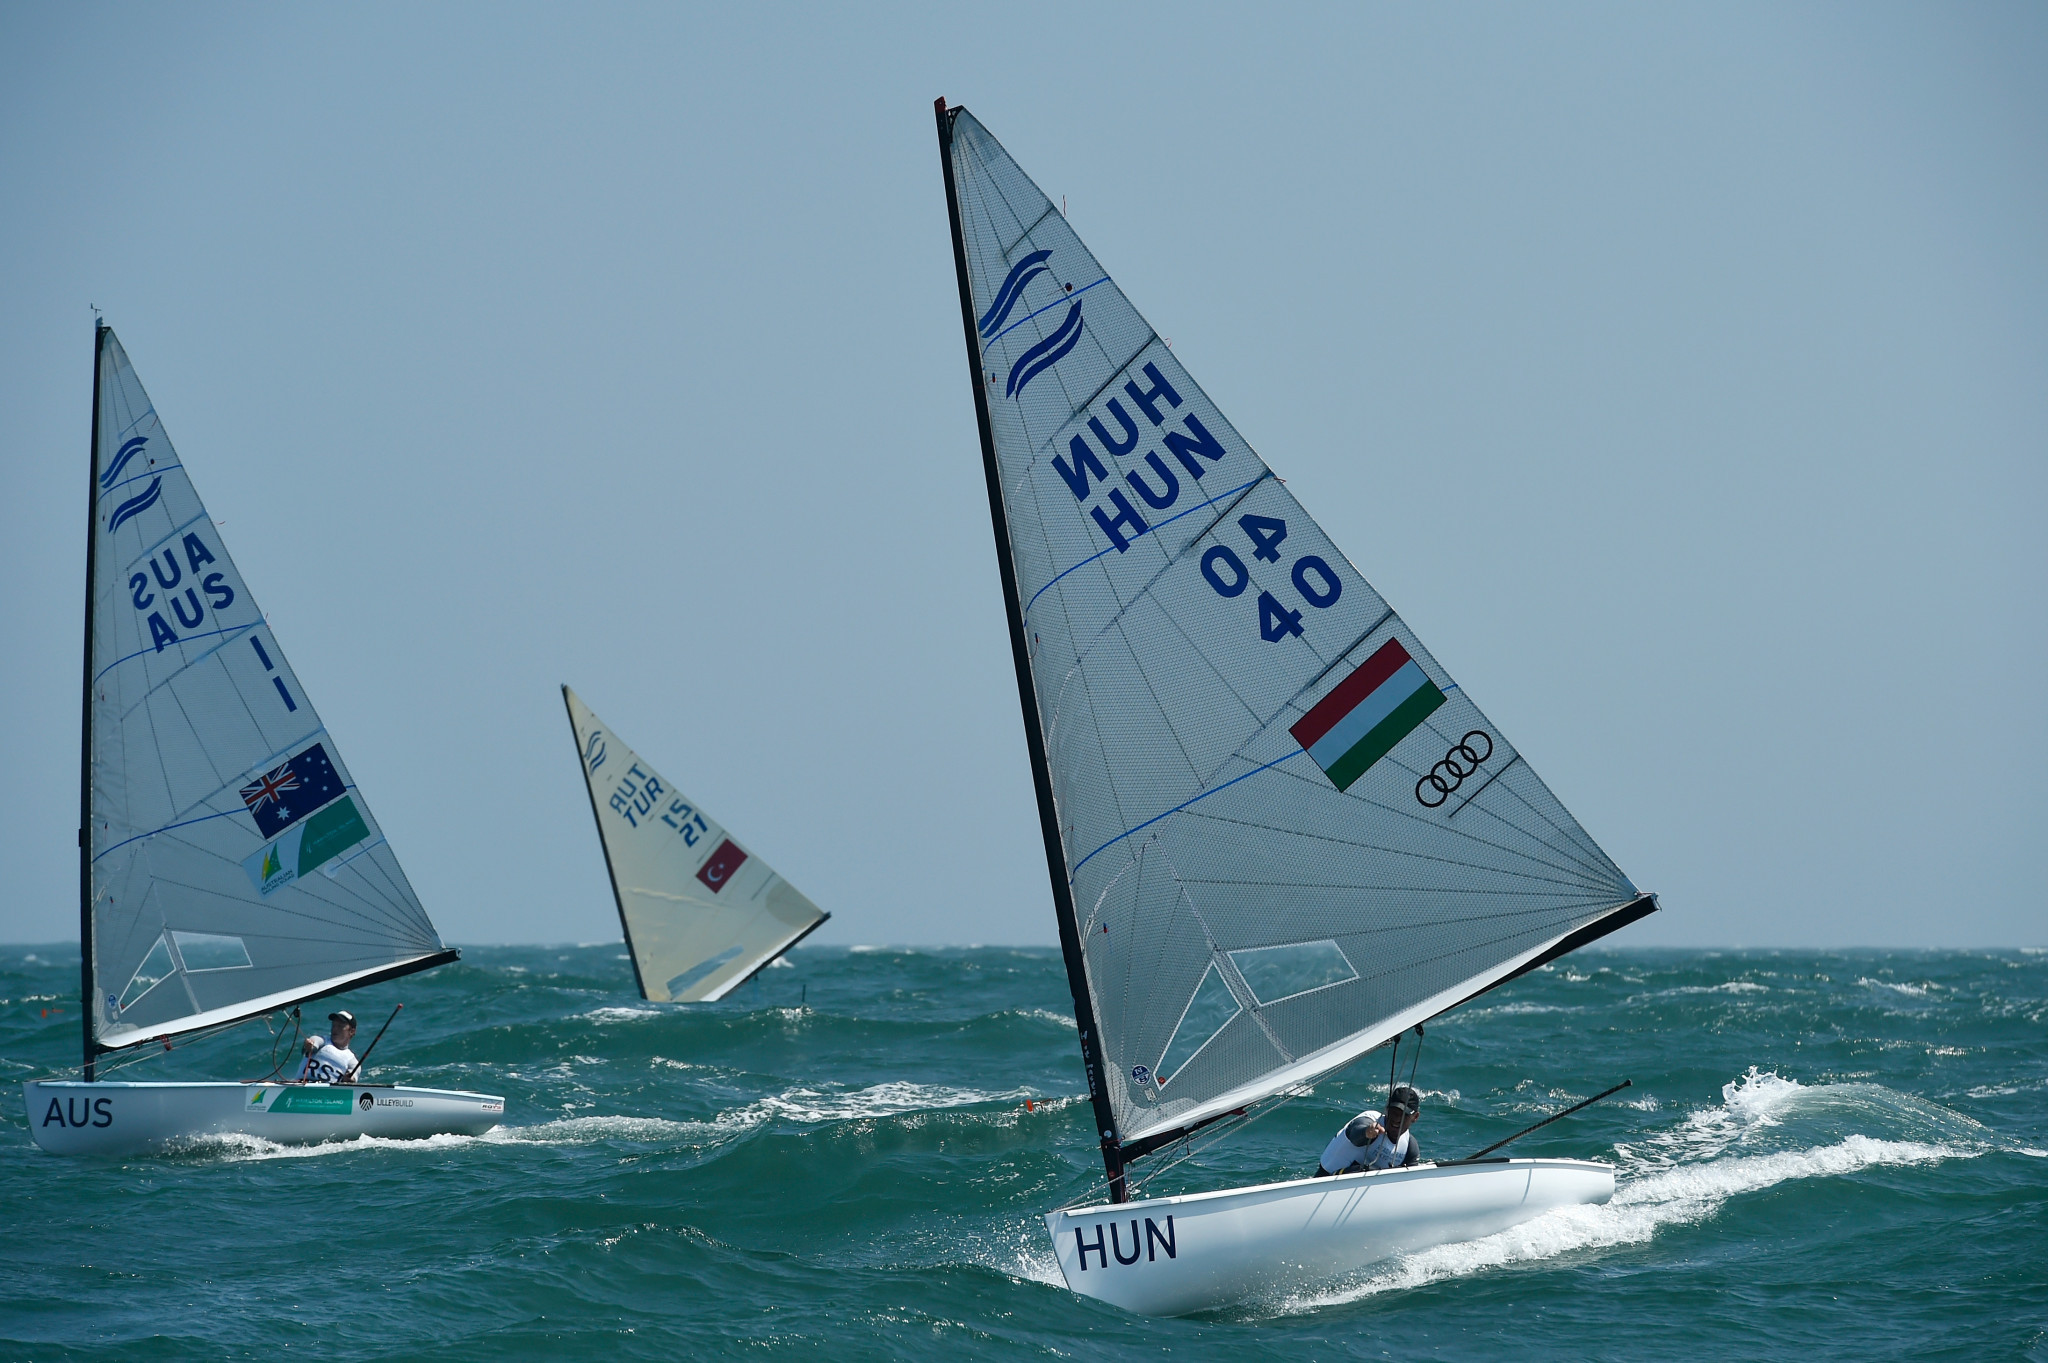 Test event winners return to Tokyo 2020 Olympic course for start of Sailing World Cup season